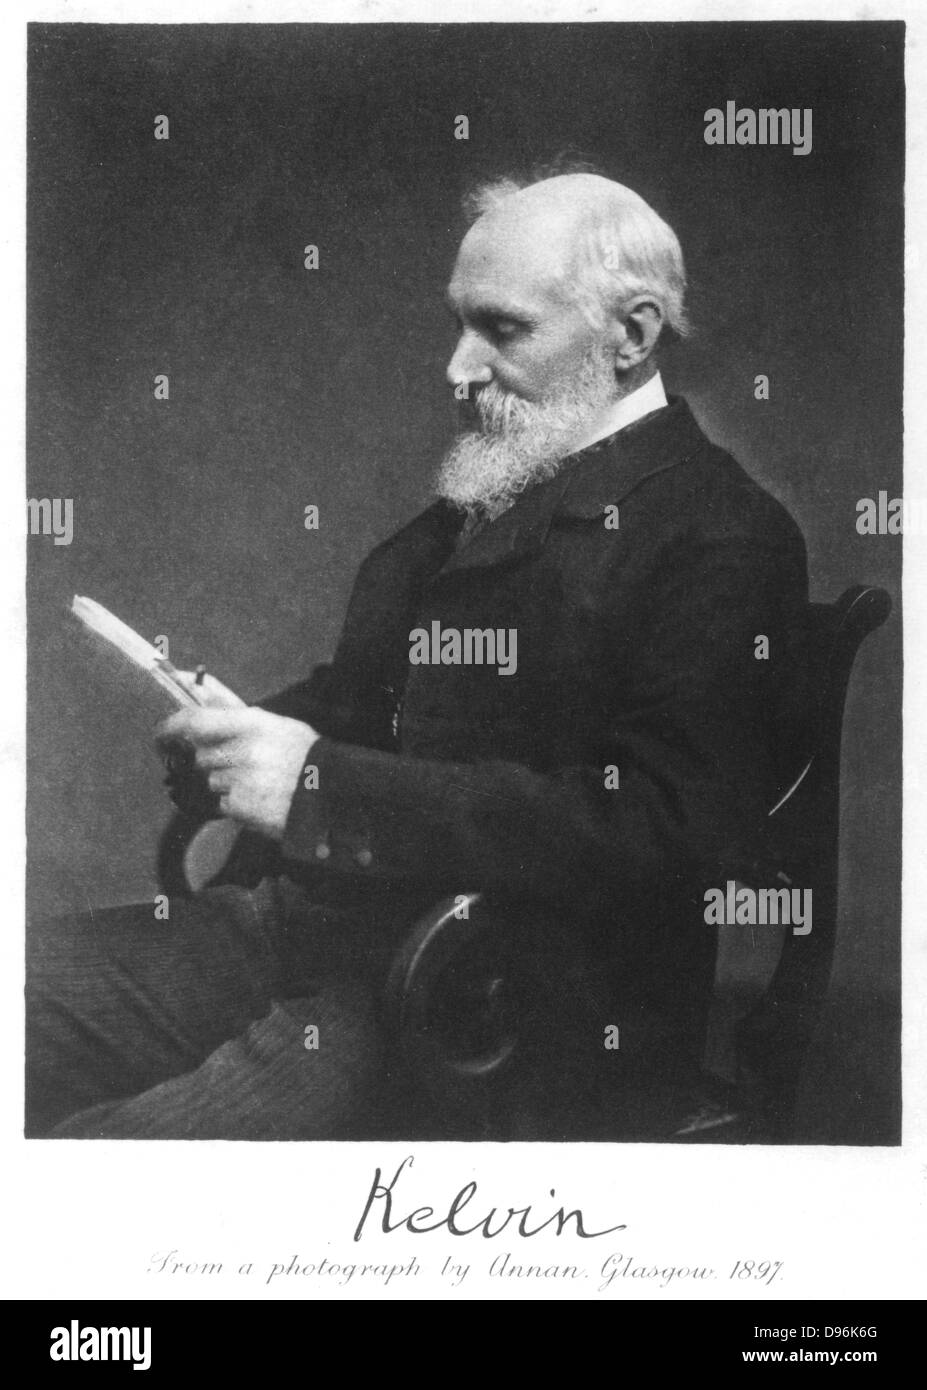 William Thomson, Lord Kelvin (1824-1907), Scottish mathematician and physicist. From photograph taken in 1897 - Stock Image